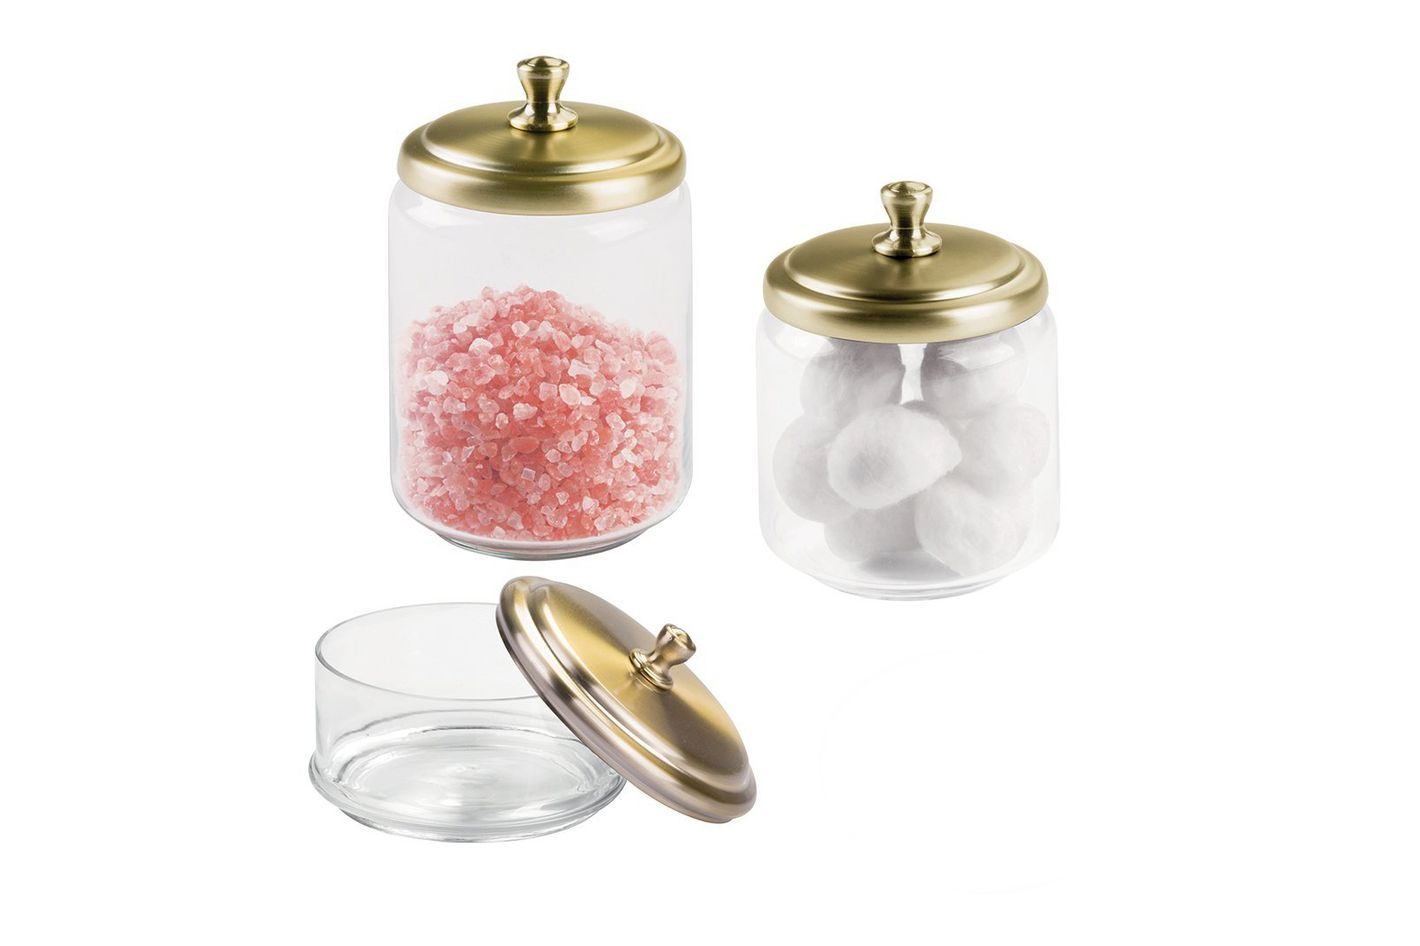 mDesign Bathroom Vanity Glass Apothecary Jars